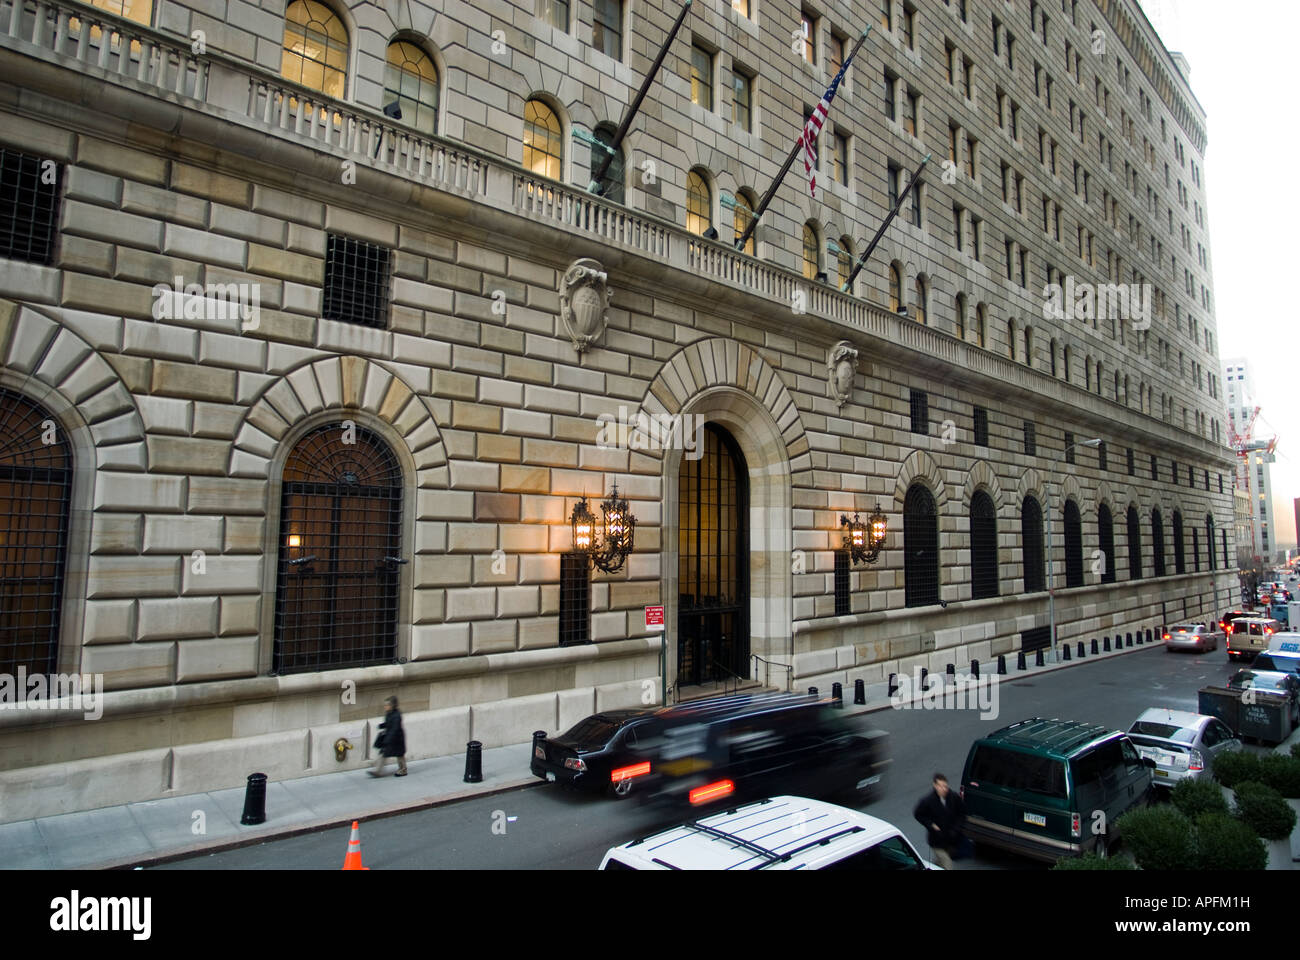 The Federal Reserve Bank Of New York Building On Liberty Street In